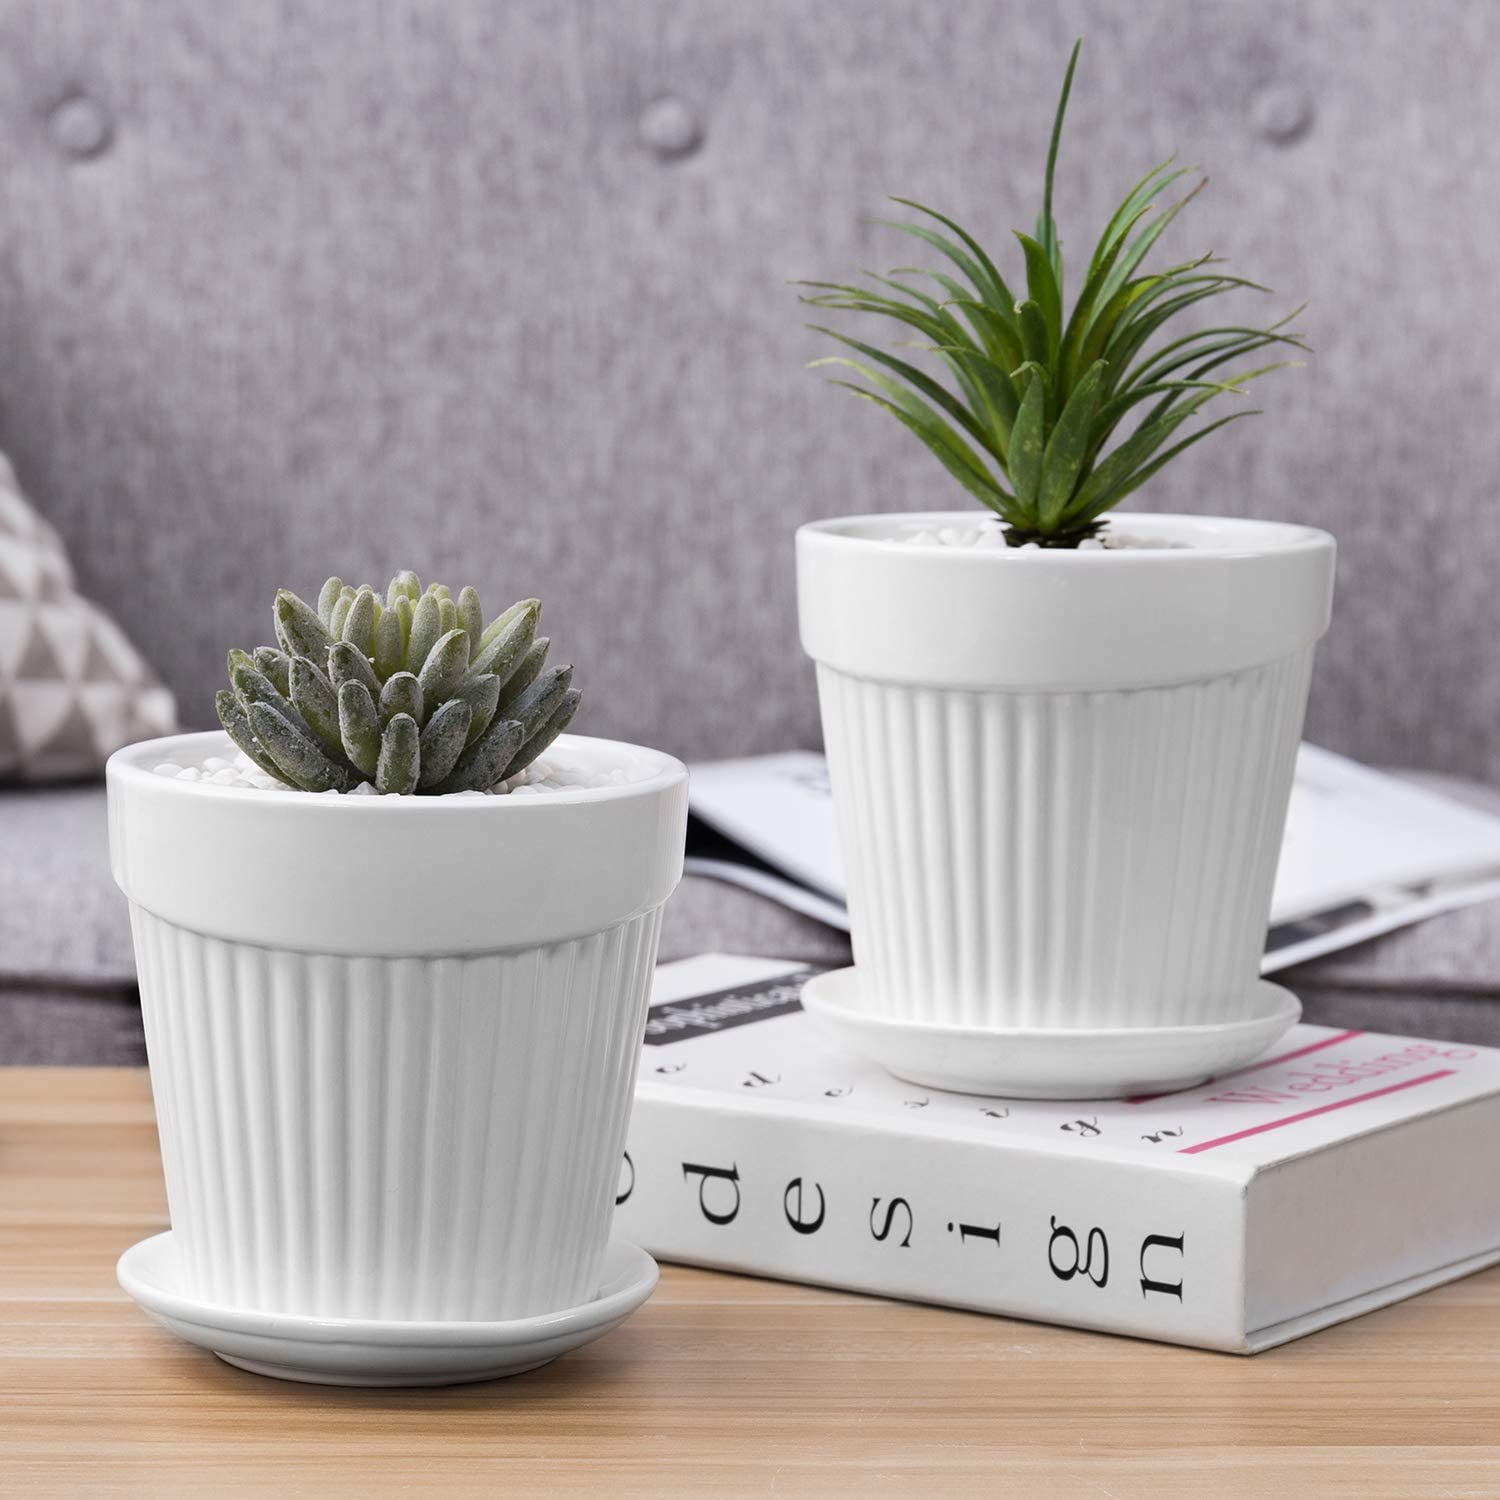 Set Of 2 Small White Decorative Ribbed Ceramic Plant Flower Planter Pot W Attached Saucer Mygift Garden Outdoor